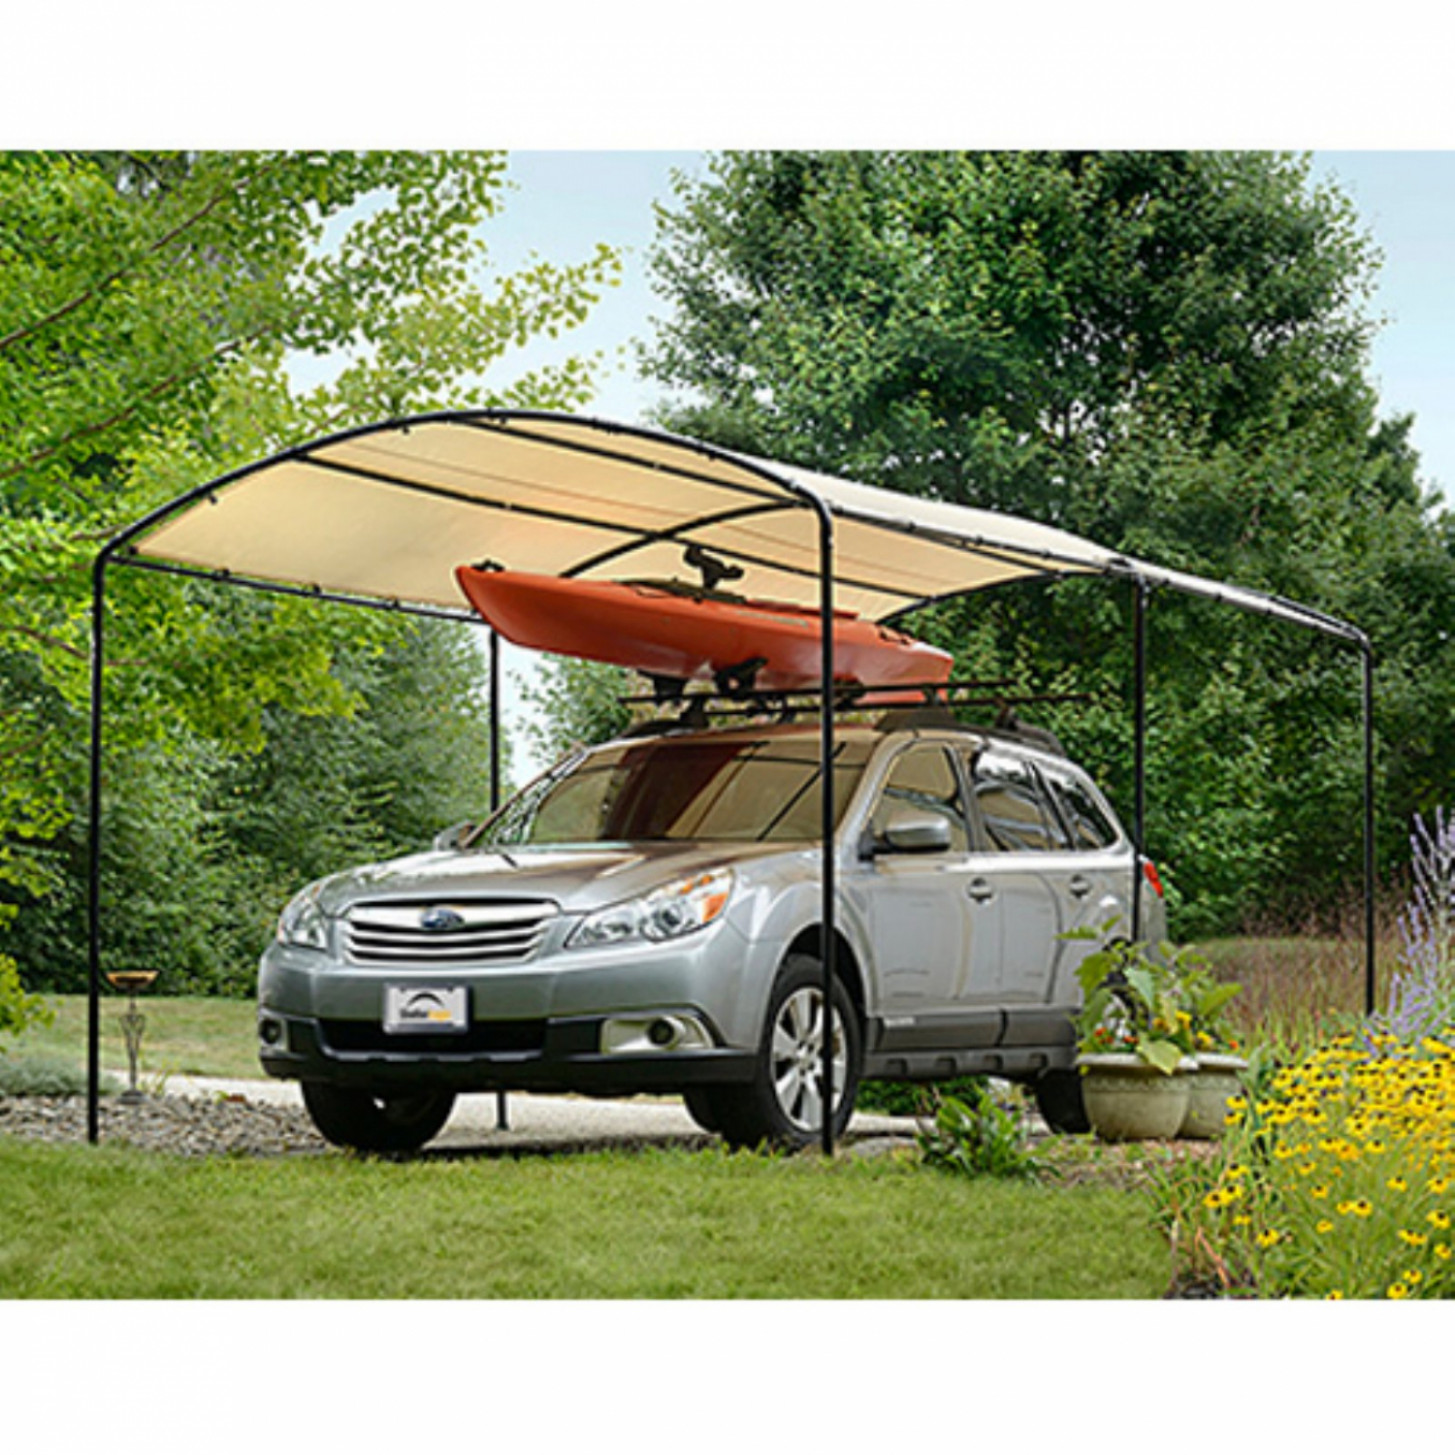 Details About Metal Carports Carport Canopy Kits Garage Steel Frame Car 10 X 10 Boat Tent Cover Photo Carport Garage